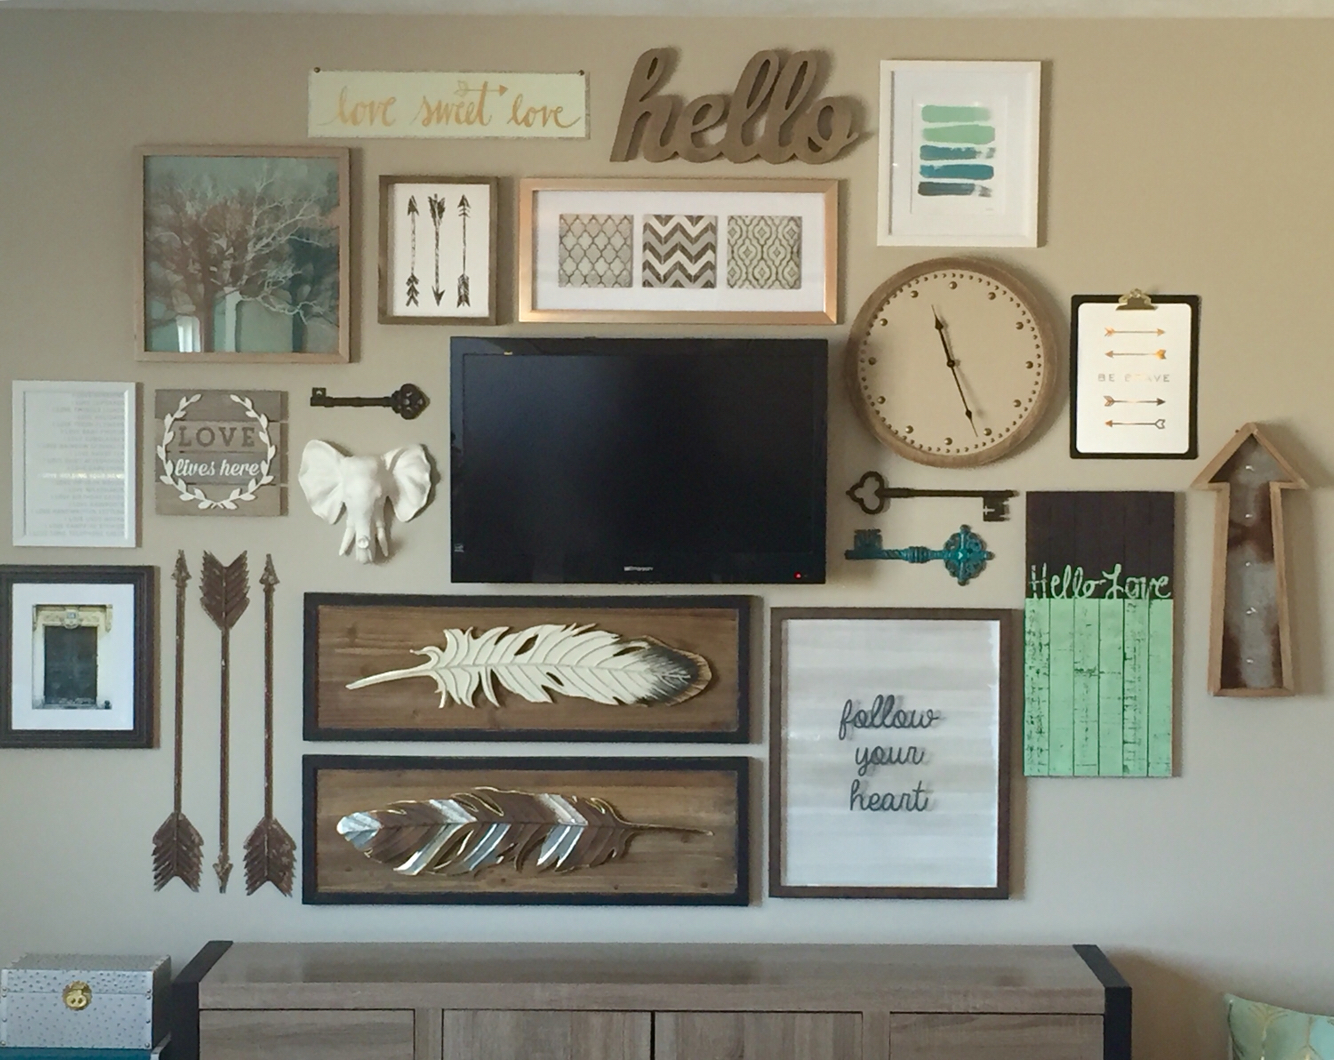 Bilderwand Gestalten Decor Around Tv :helpful Tips To Make A Statement In Your